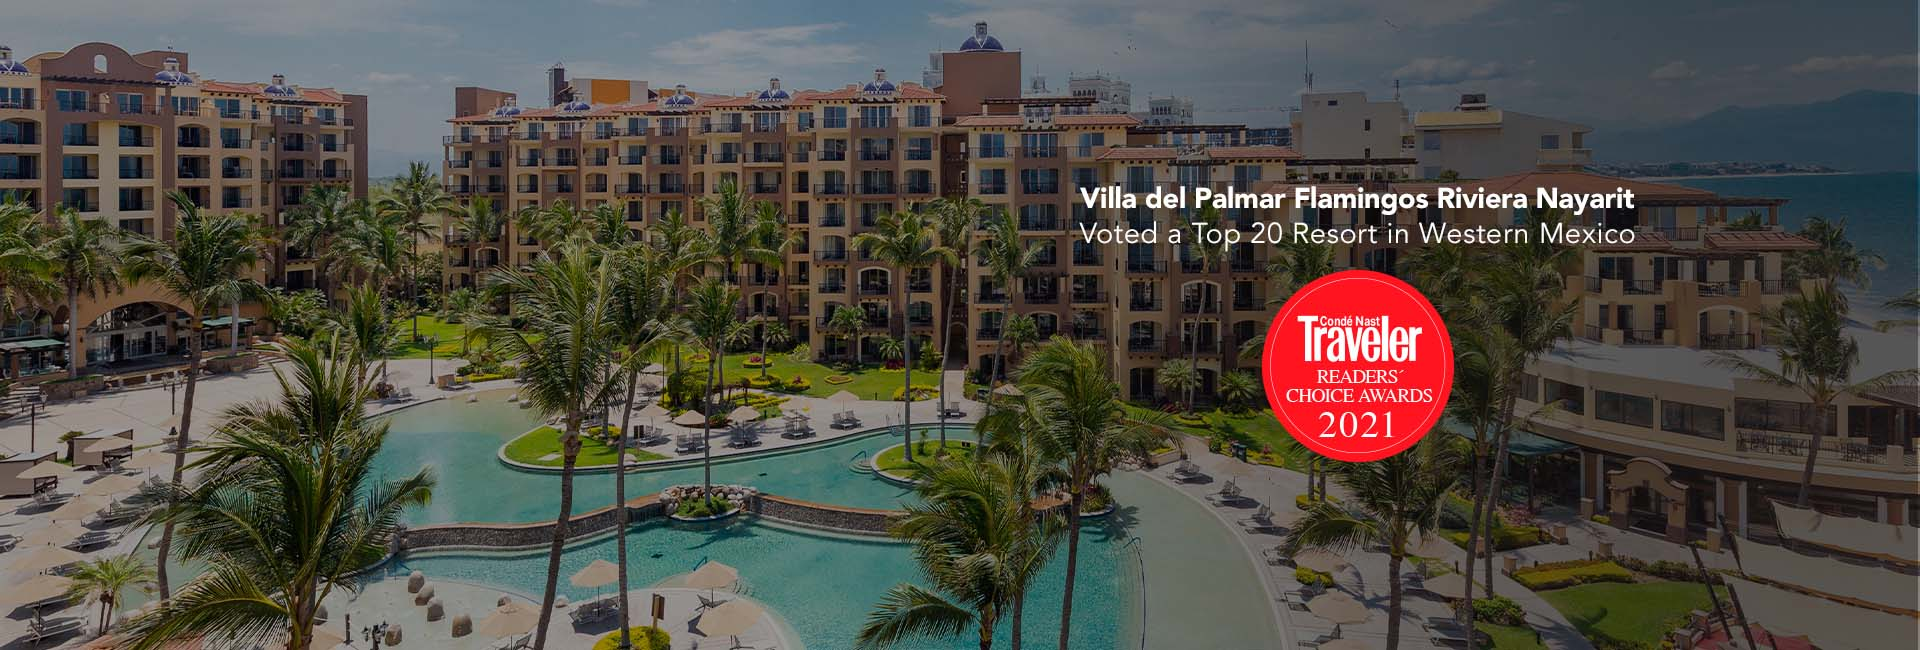 Villa del palmar one of the best resorts by conde nast readers choice awards 2021